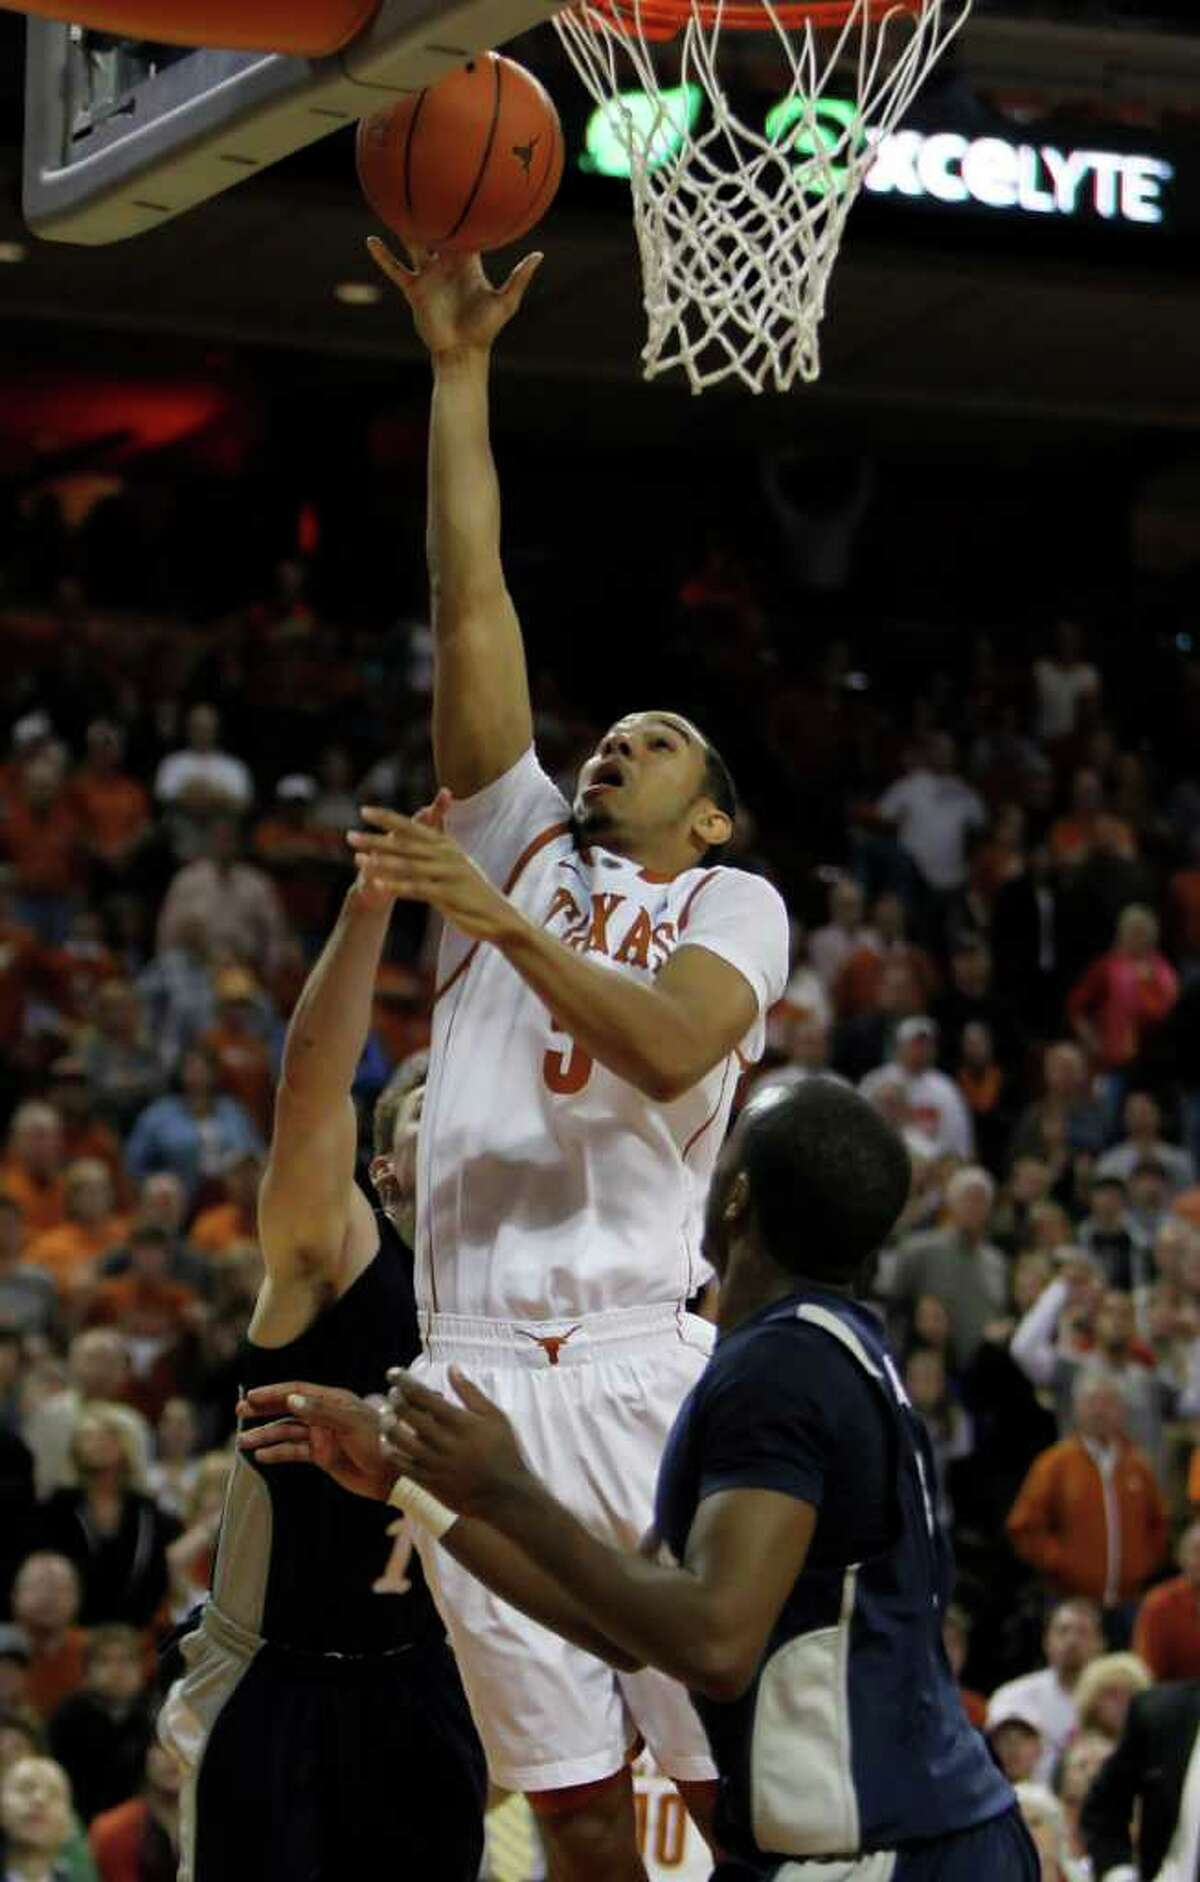 Texas' Cory Joseph (5) goes for a shot against Rice during an NCAA college basketball game in Austin, Texas, Saturday, Nov. 27, 2010. Joseph was Texas high-scorer with 14 points. Texas defeated Rice 62-59. (AP Photo/Erich Schlegel)